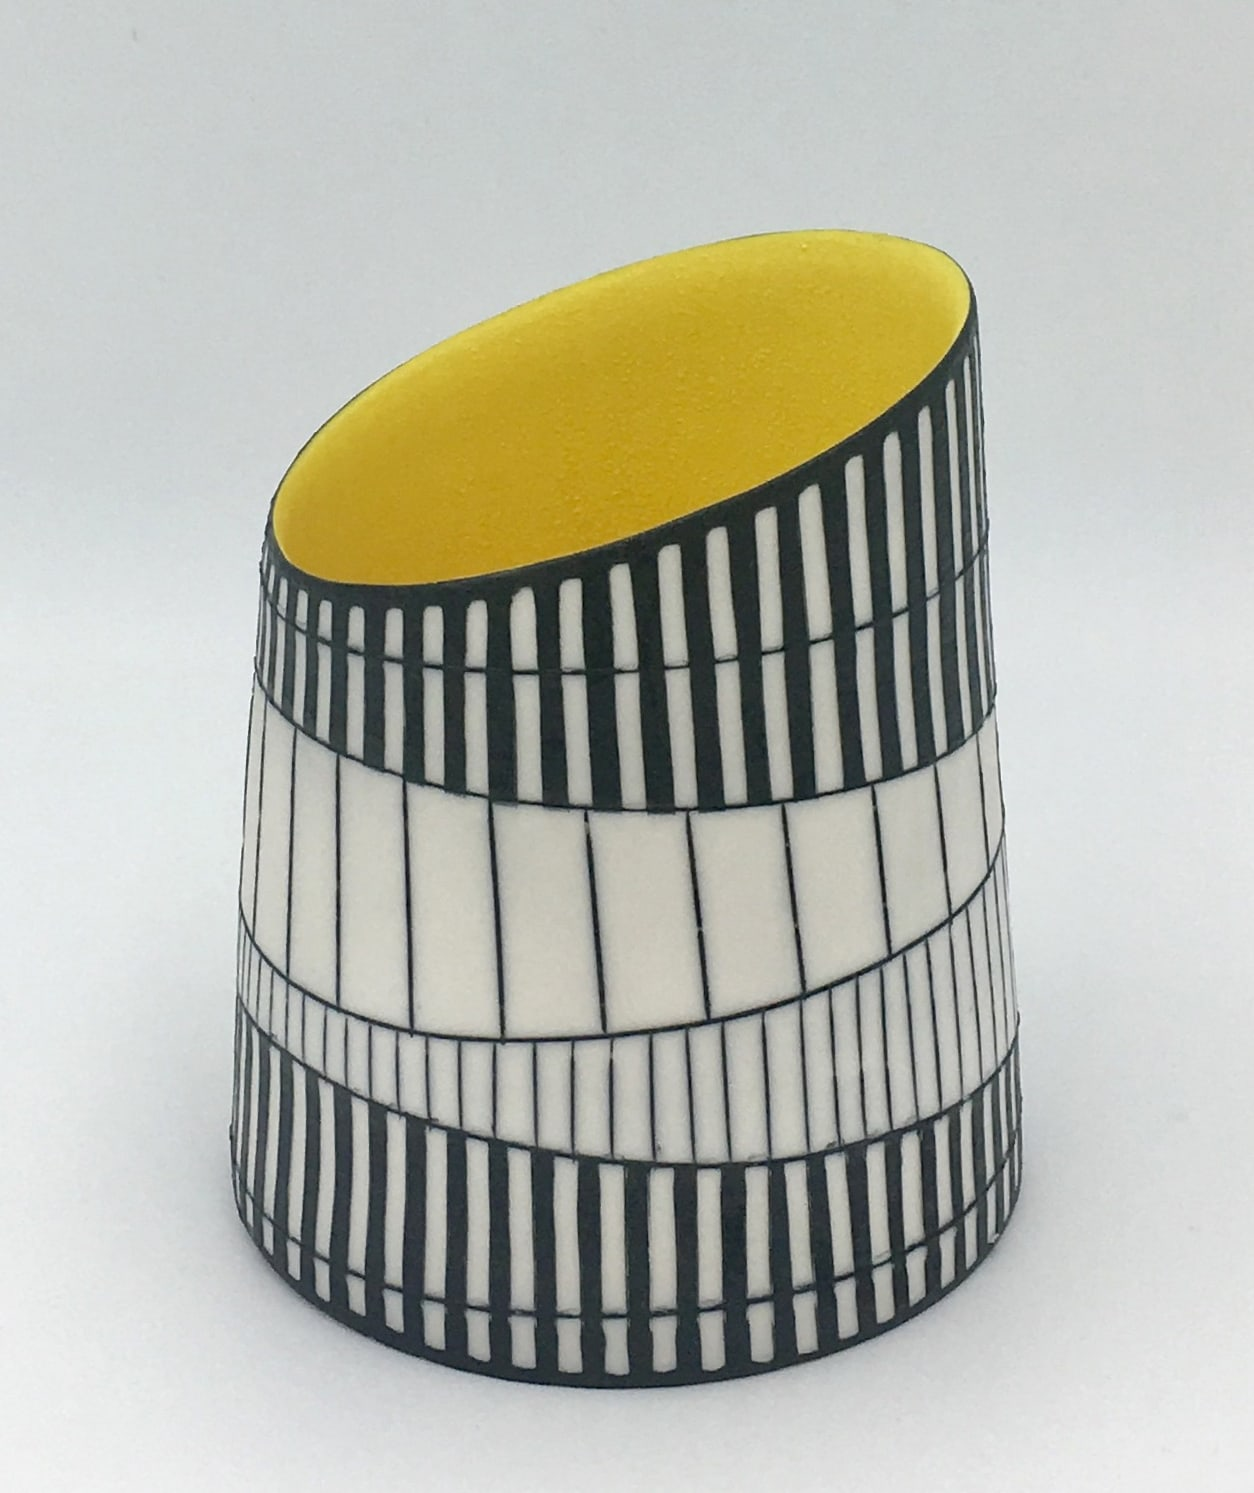 """<span class=""""link fancybox-details-link""""><a href=""""/artists/195-lara-scobie/works/6534-lara-scobie-vessel-with-yellow-interior-2019/"""">View Detail Page</a></span><div class=""""artist""""><strong>Lara Scobie</strong></div> b. 1967 <div class=""""title""""><em>Vessel with Yellow Interior</em>, 2019</div> <div class=""""medium"""">Porcelain</div><div class=""""copyright_line"""">Own Art: £24 x 10 Months, 0% APR</div>"""